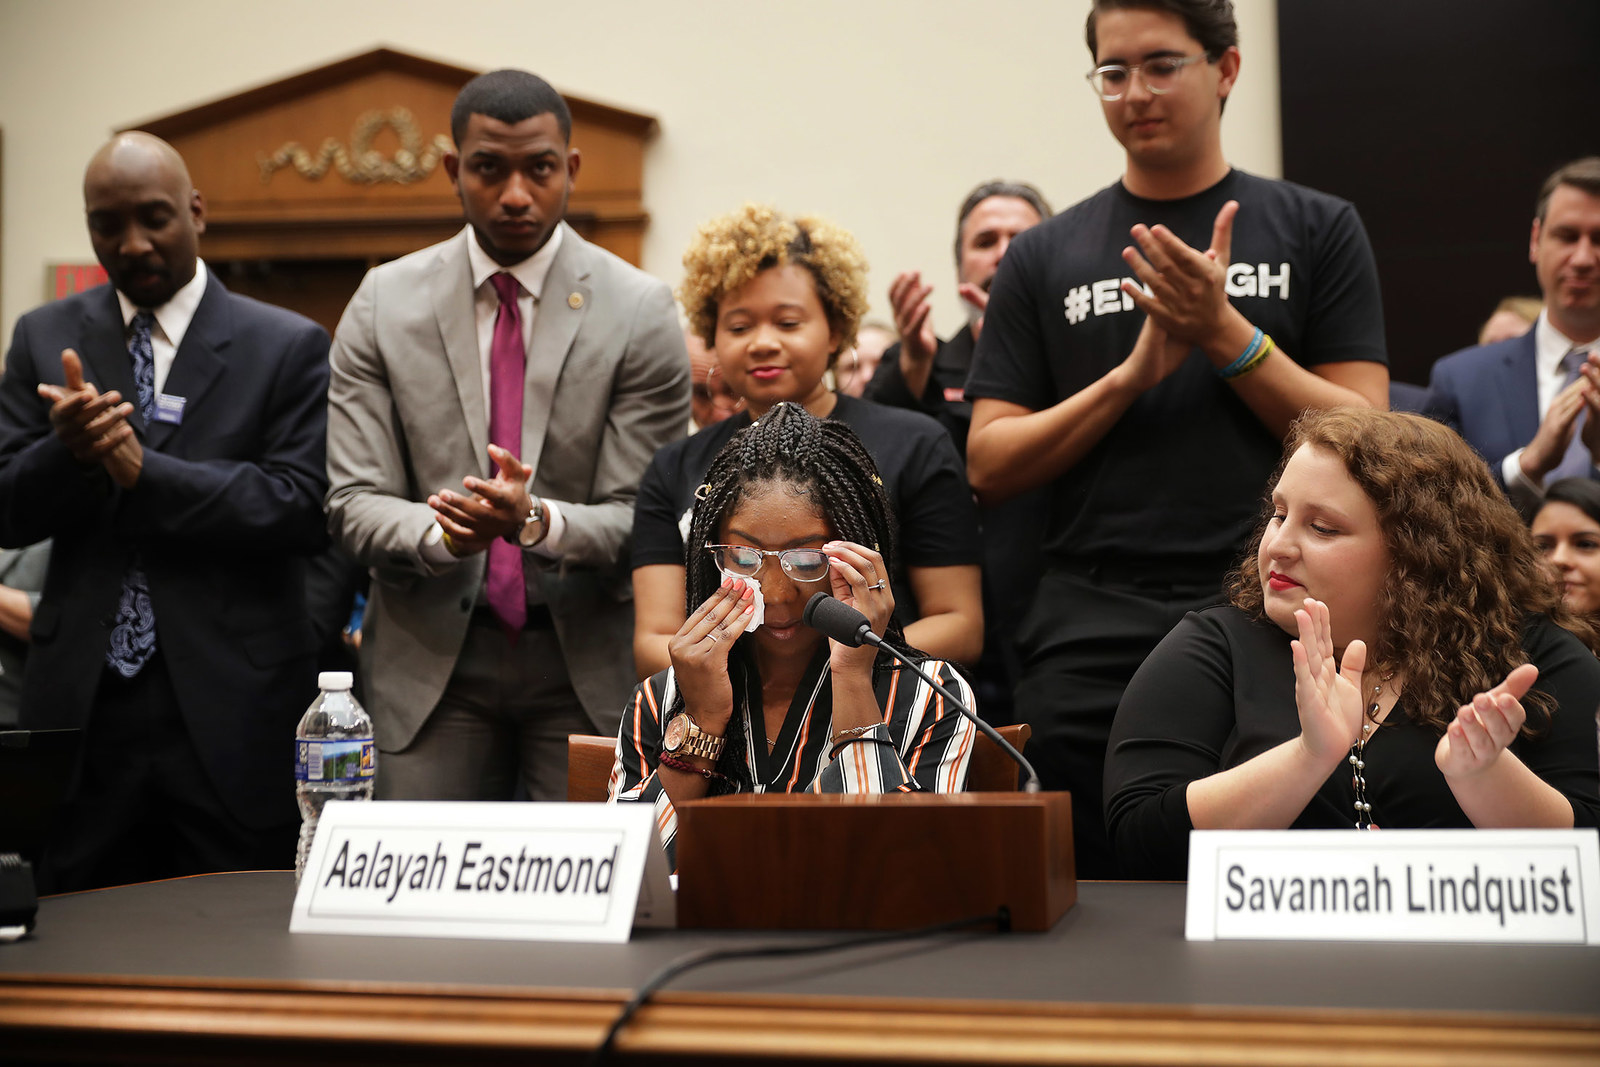 Aalayah Eastmond, center, a survivor of the mass shooting at Marjory Stoneman Douglas High School in Parkland, Florida, wipes away tears as she receives a standing ovation while testifying to the House Judiciary Committee on Feb. 6, in Washington, DC. The committee heard testimony from gun violence victims, a trauma doctor, law enforcement officials and others during the first hearing in the House of Representatives on gun violence in eight years.